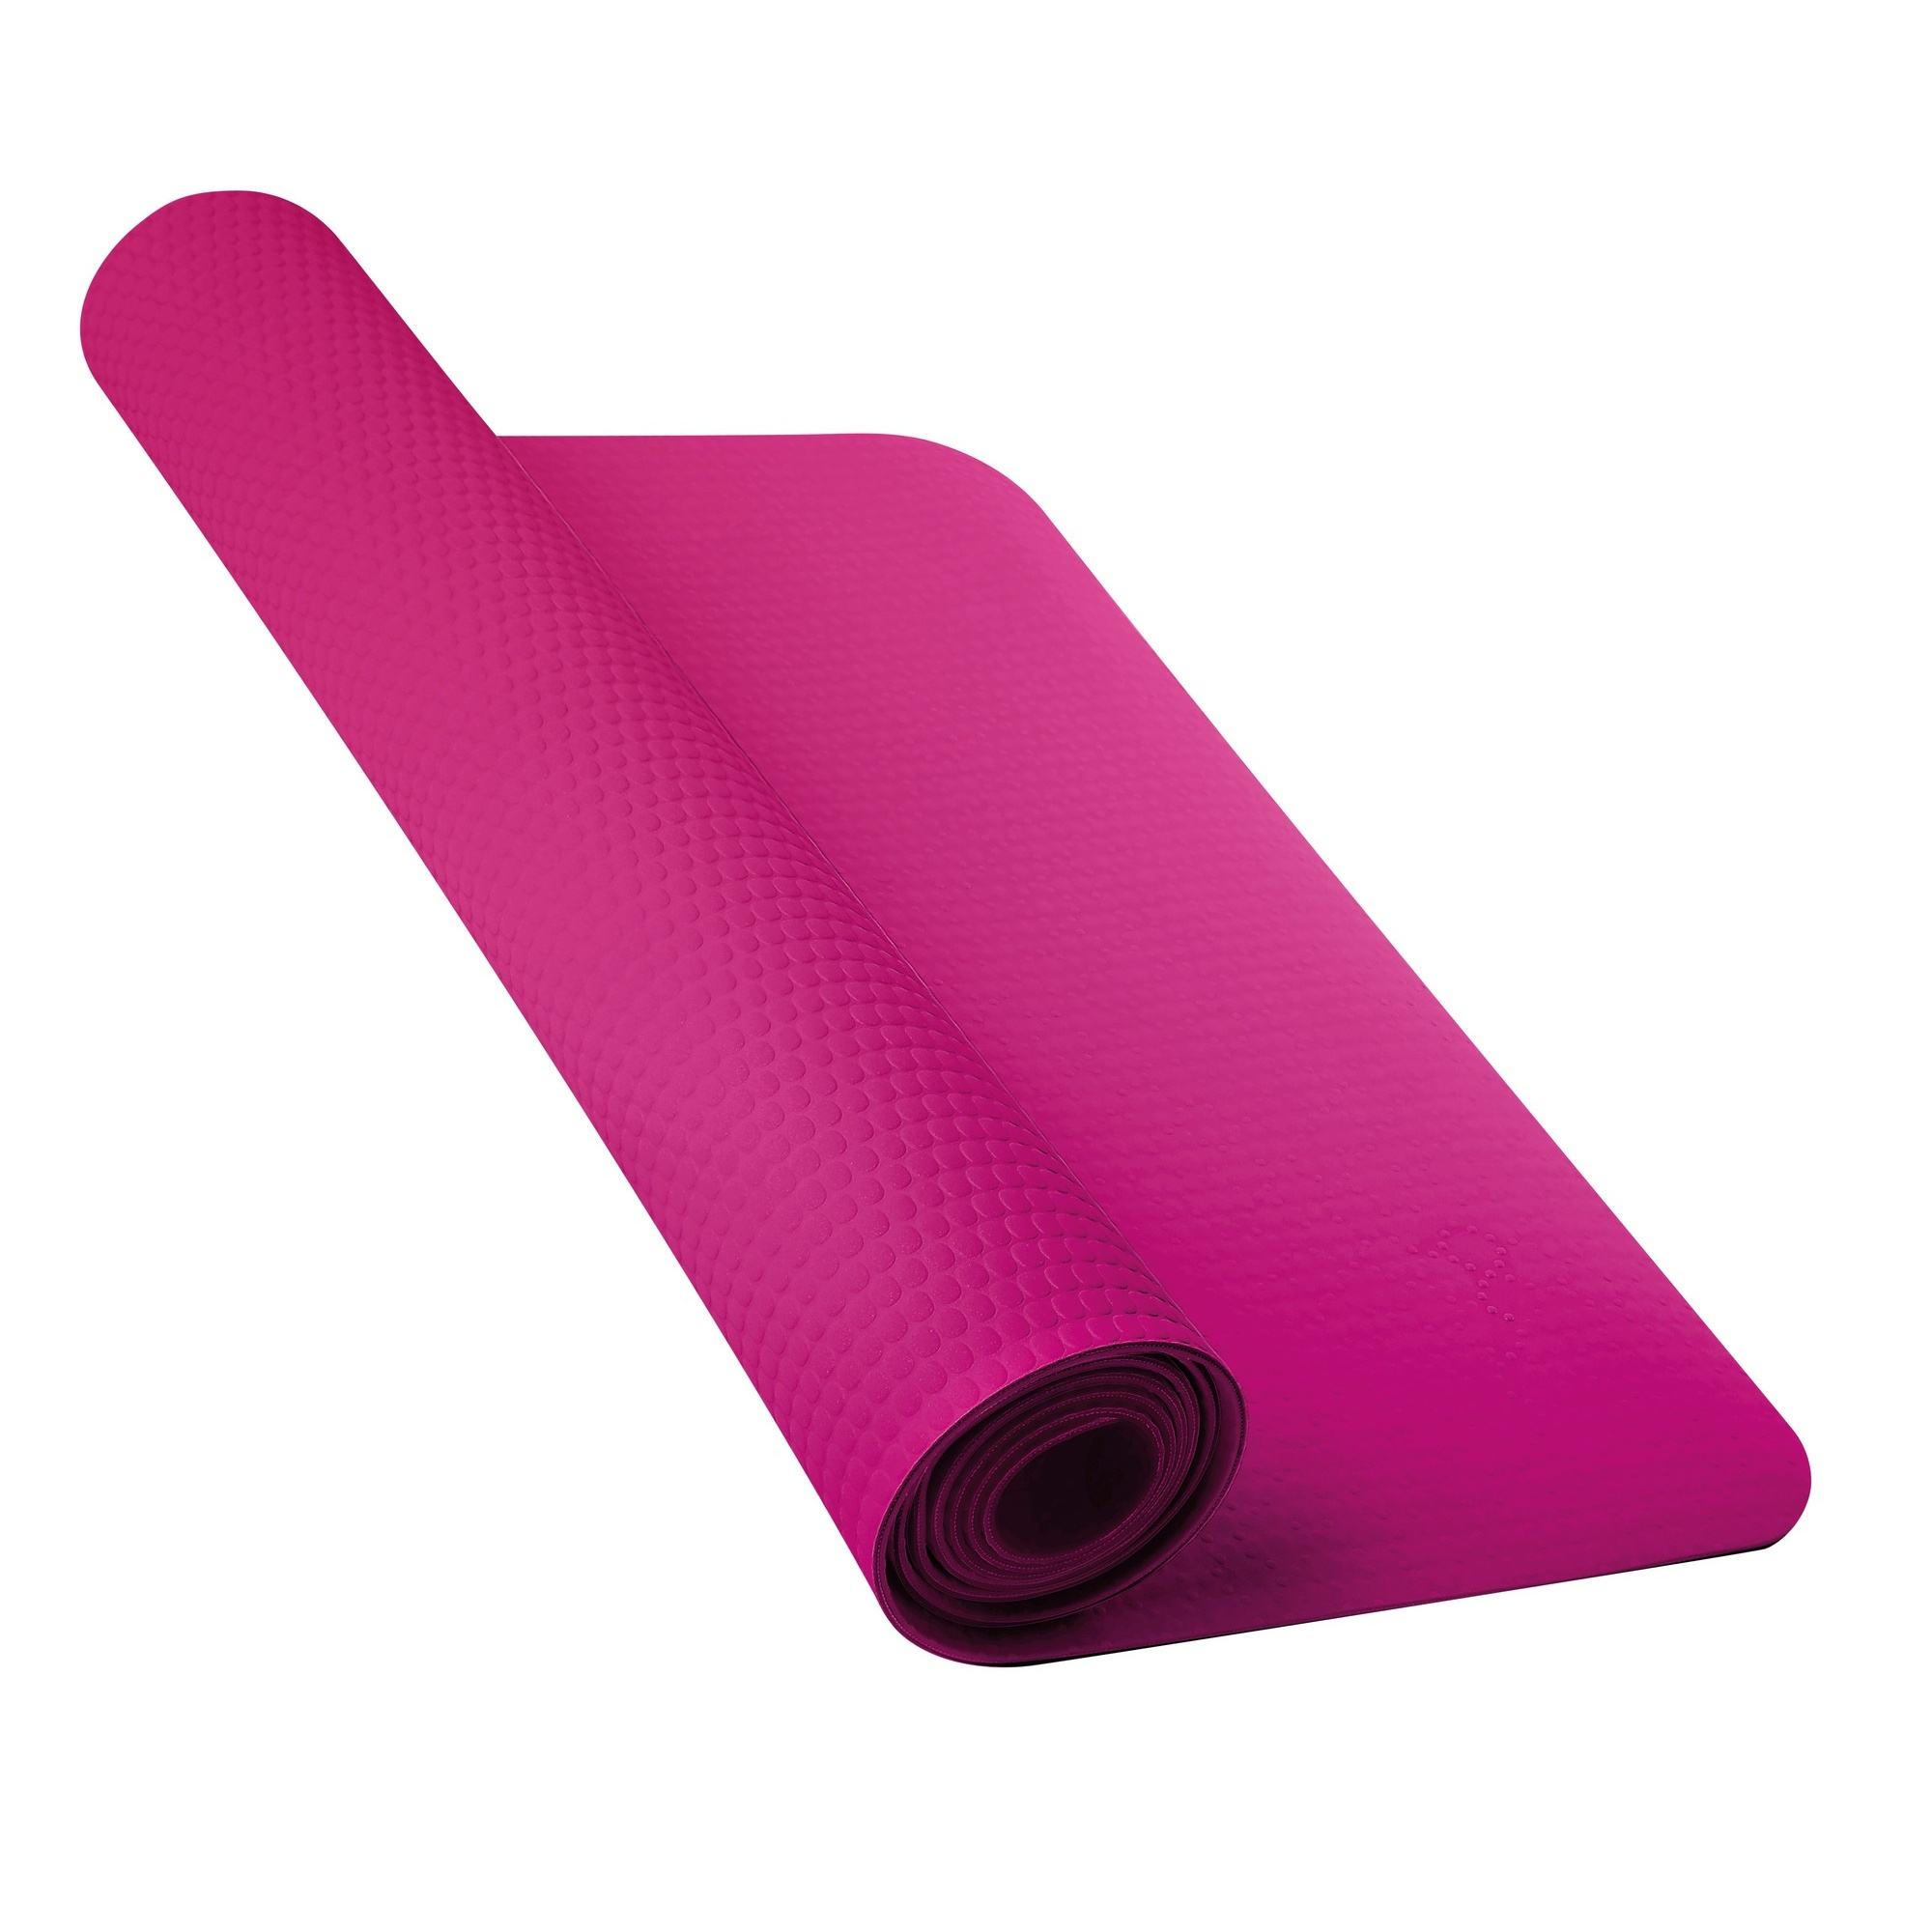 material reef eko retouched manduka product mats dog upward yoga mat